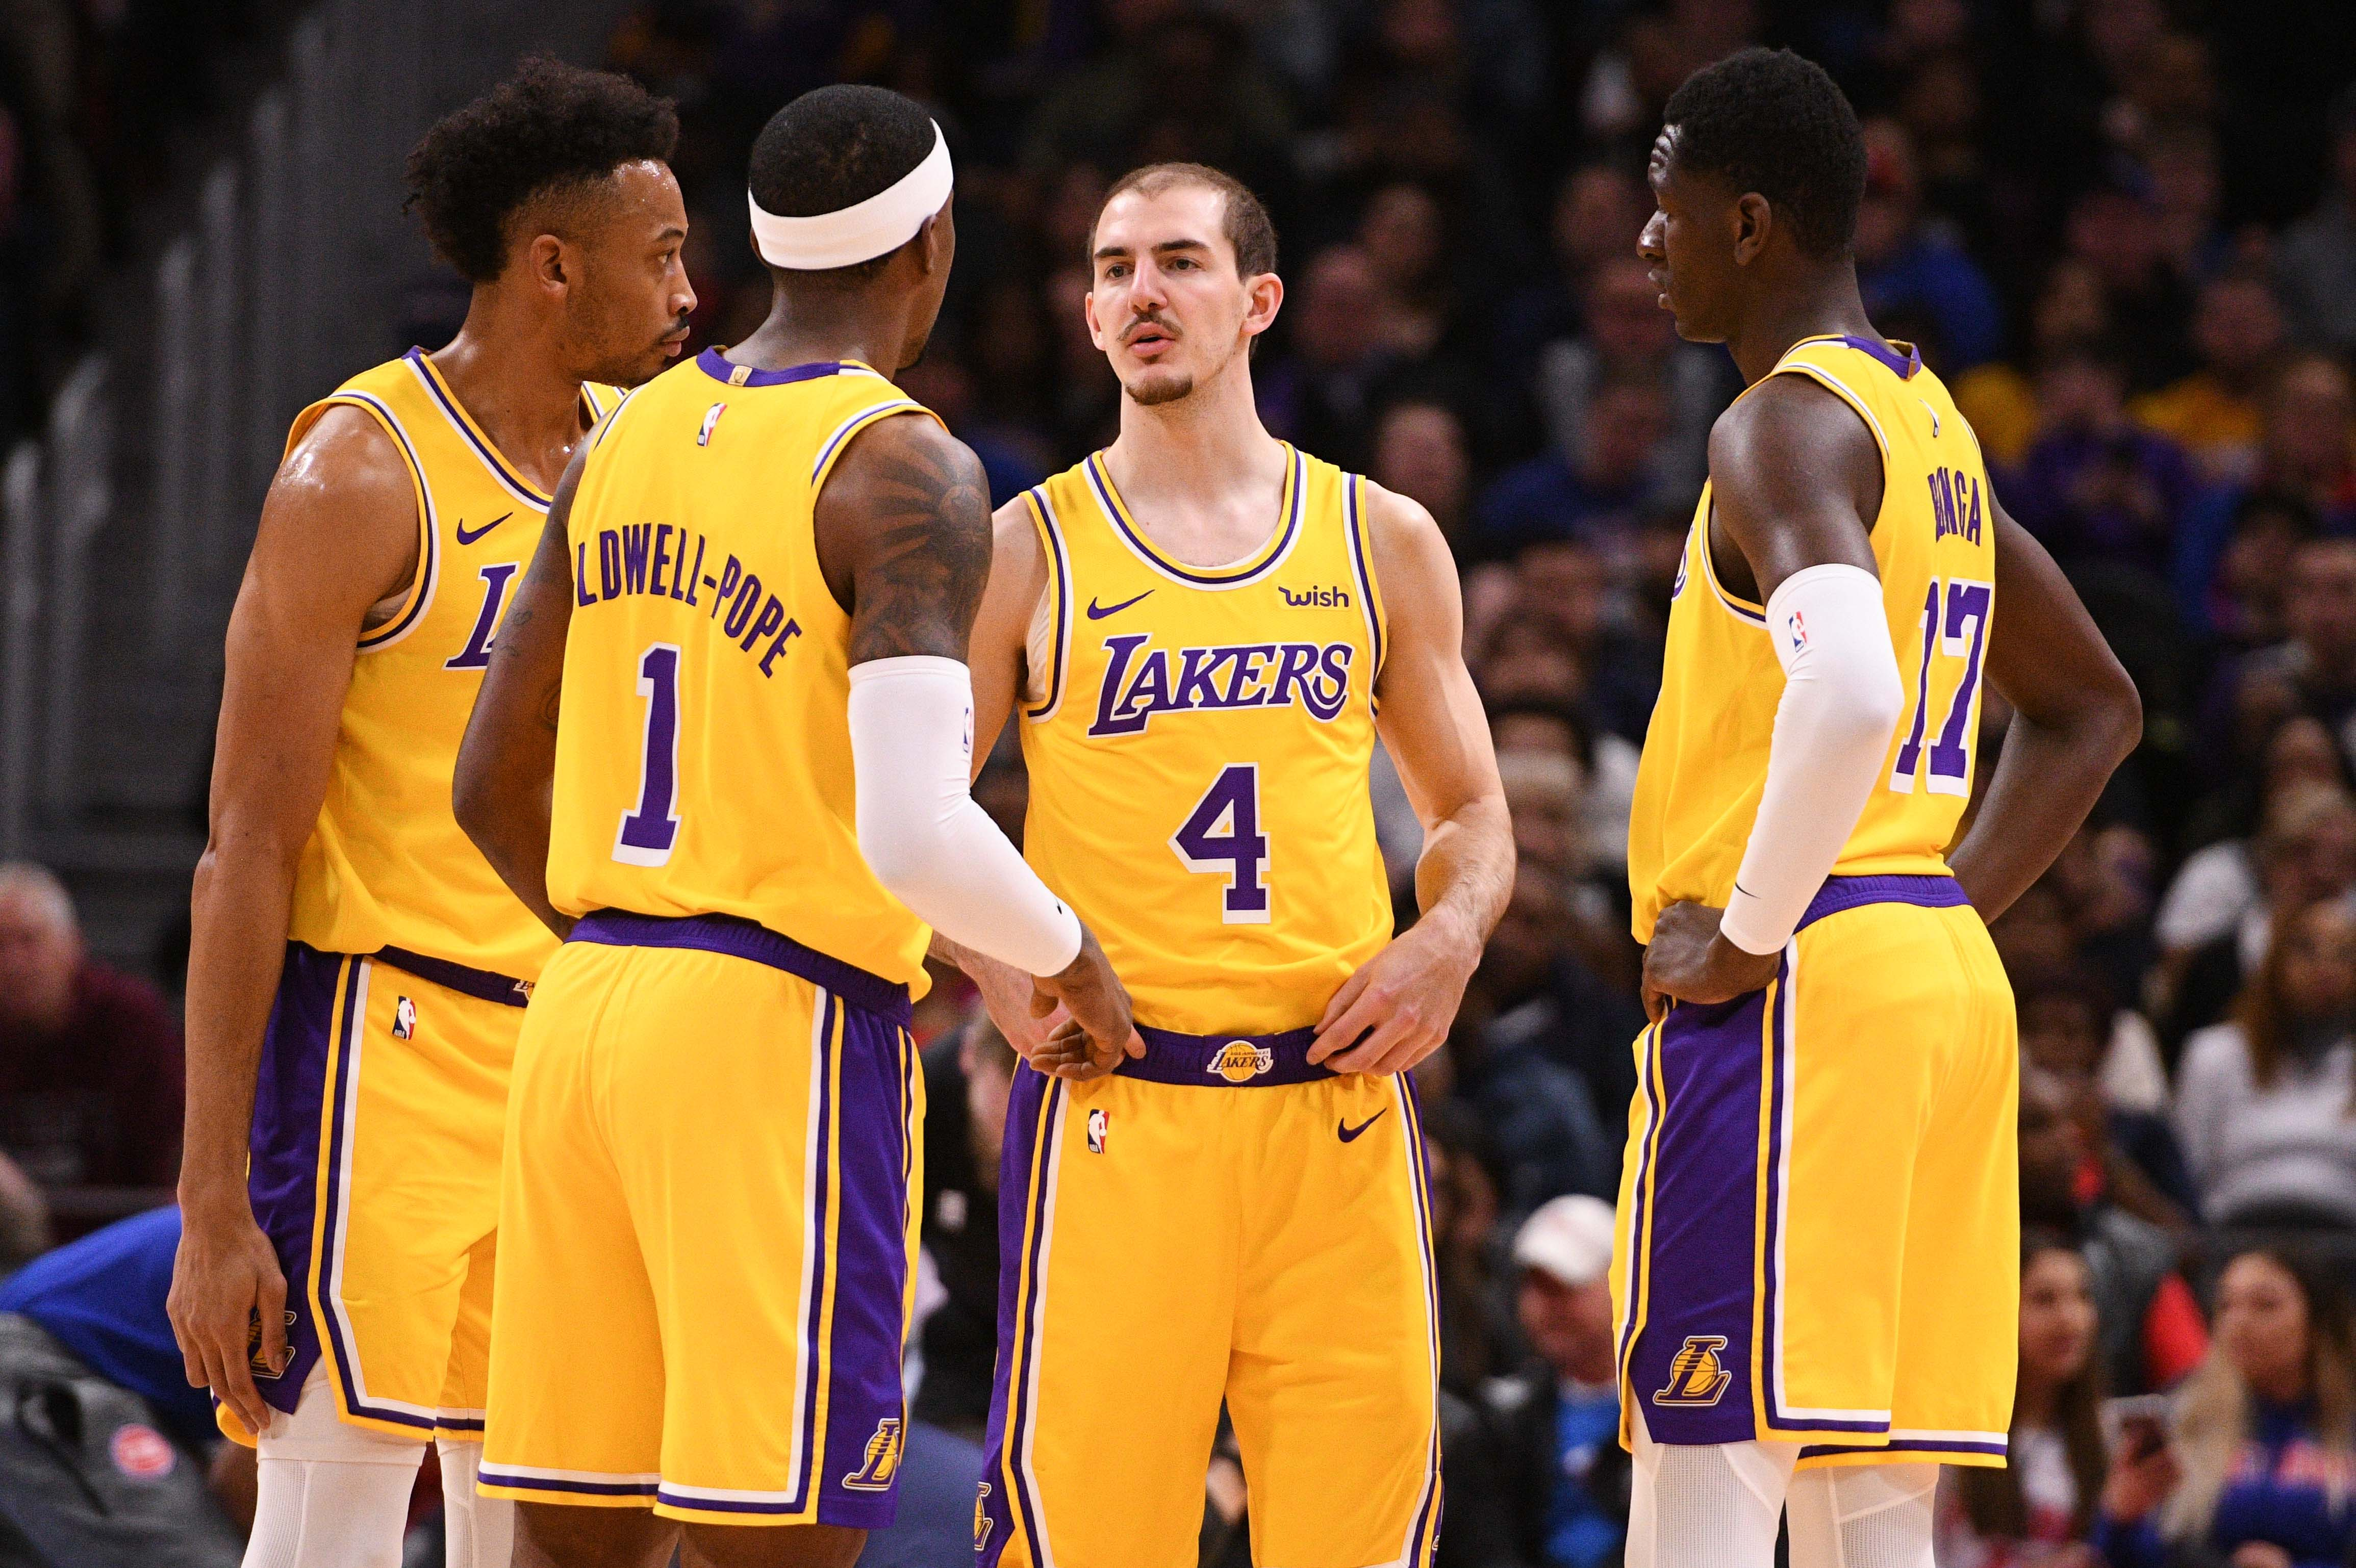 63f5aaf5a Lakers vs. Knicks Preview  Can L.A. continue to get production from their G  League players